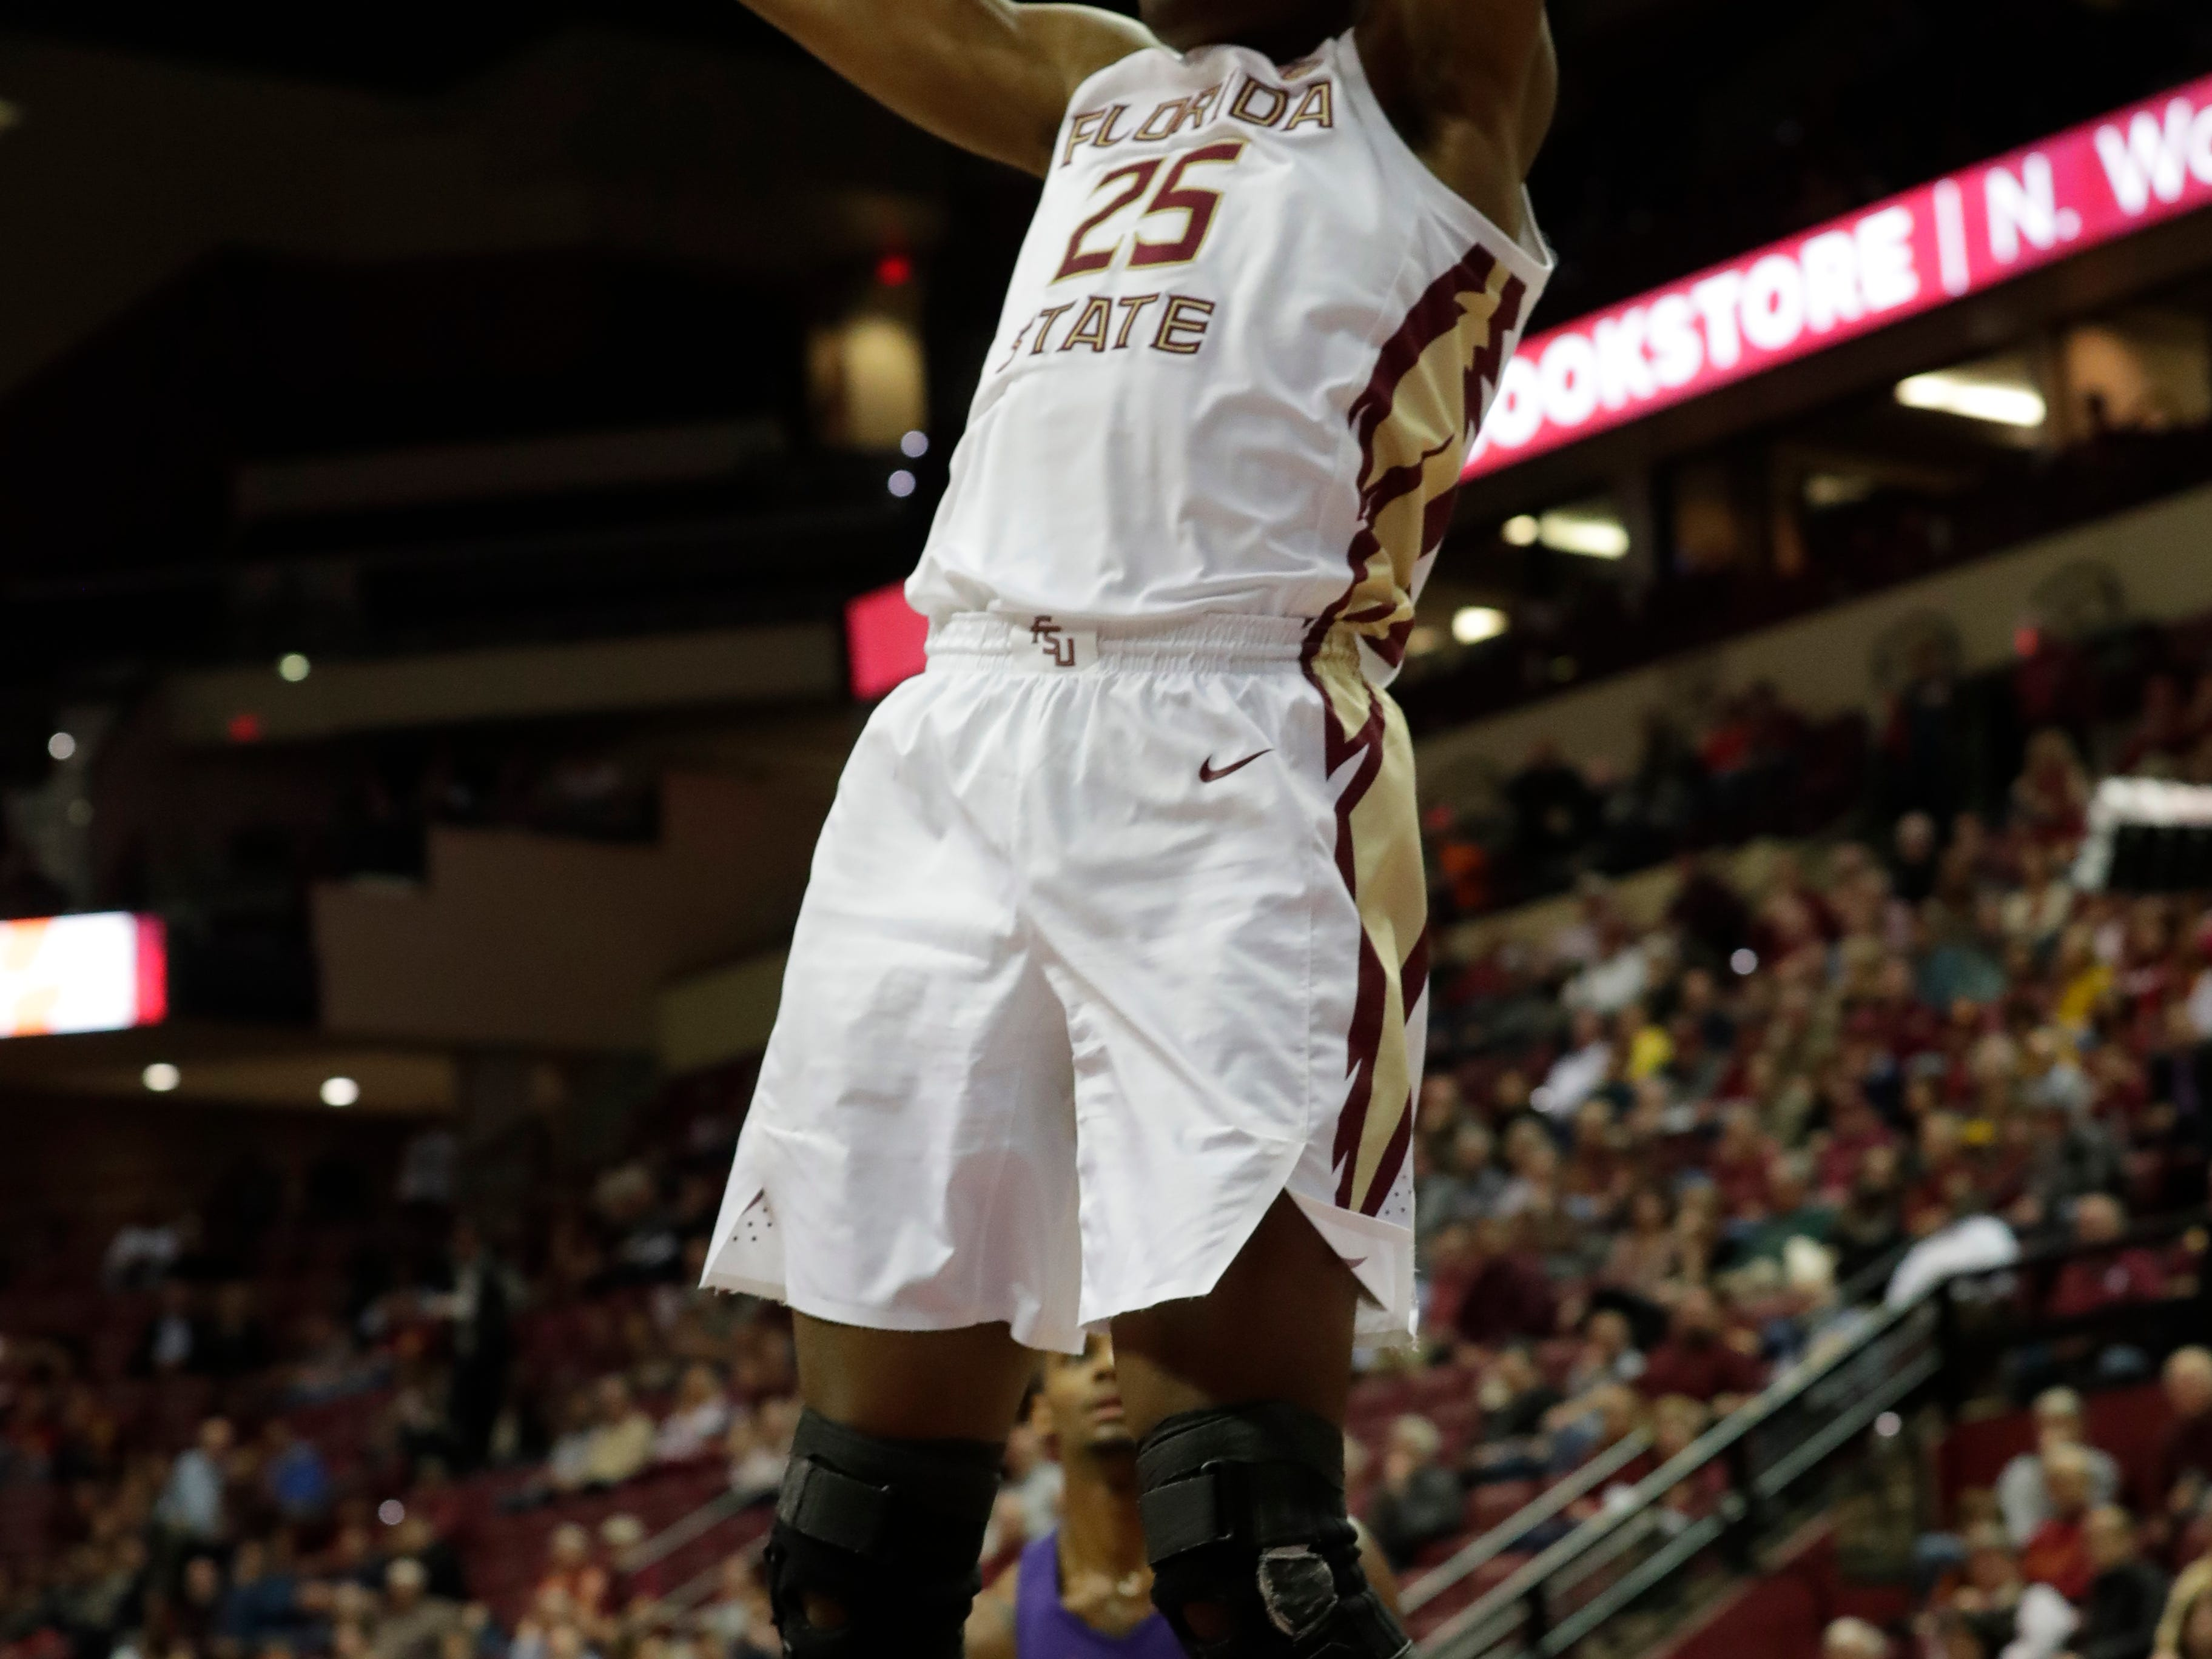 Florida State Seminoles forward Mfiondu Kabengele (25) dunks the ball. The Florida State Seminoles face off against the Clemson Tigers at the Tucker Civic Center, Tuesday, Jan. 22, 2019.